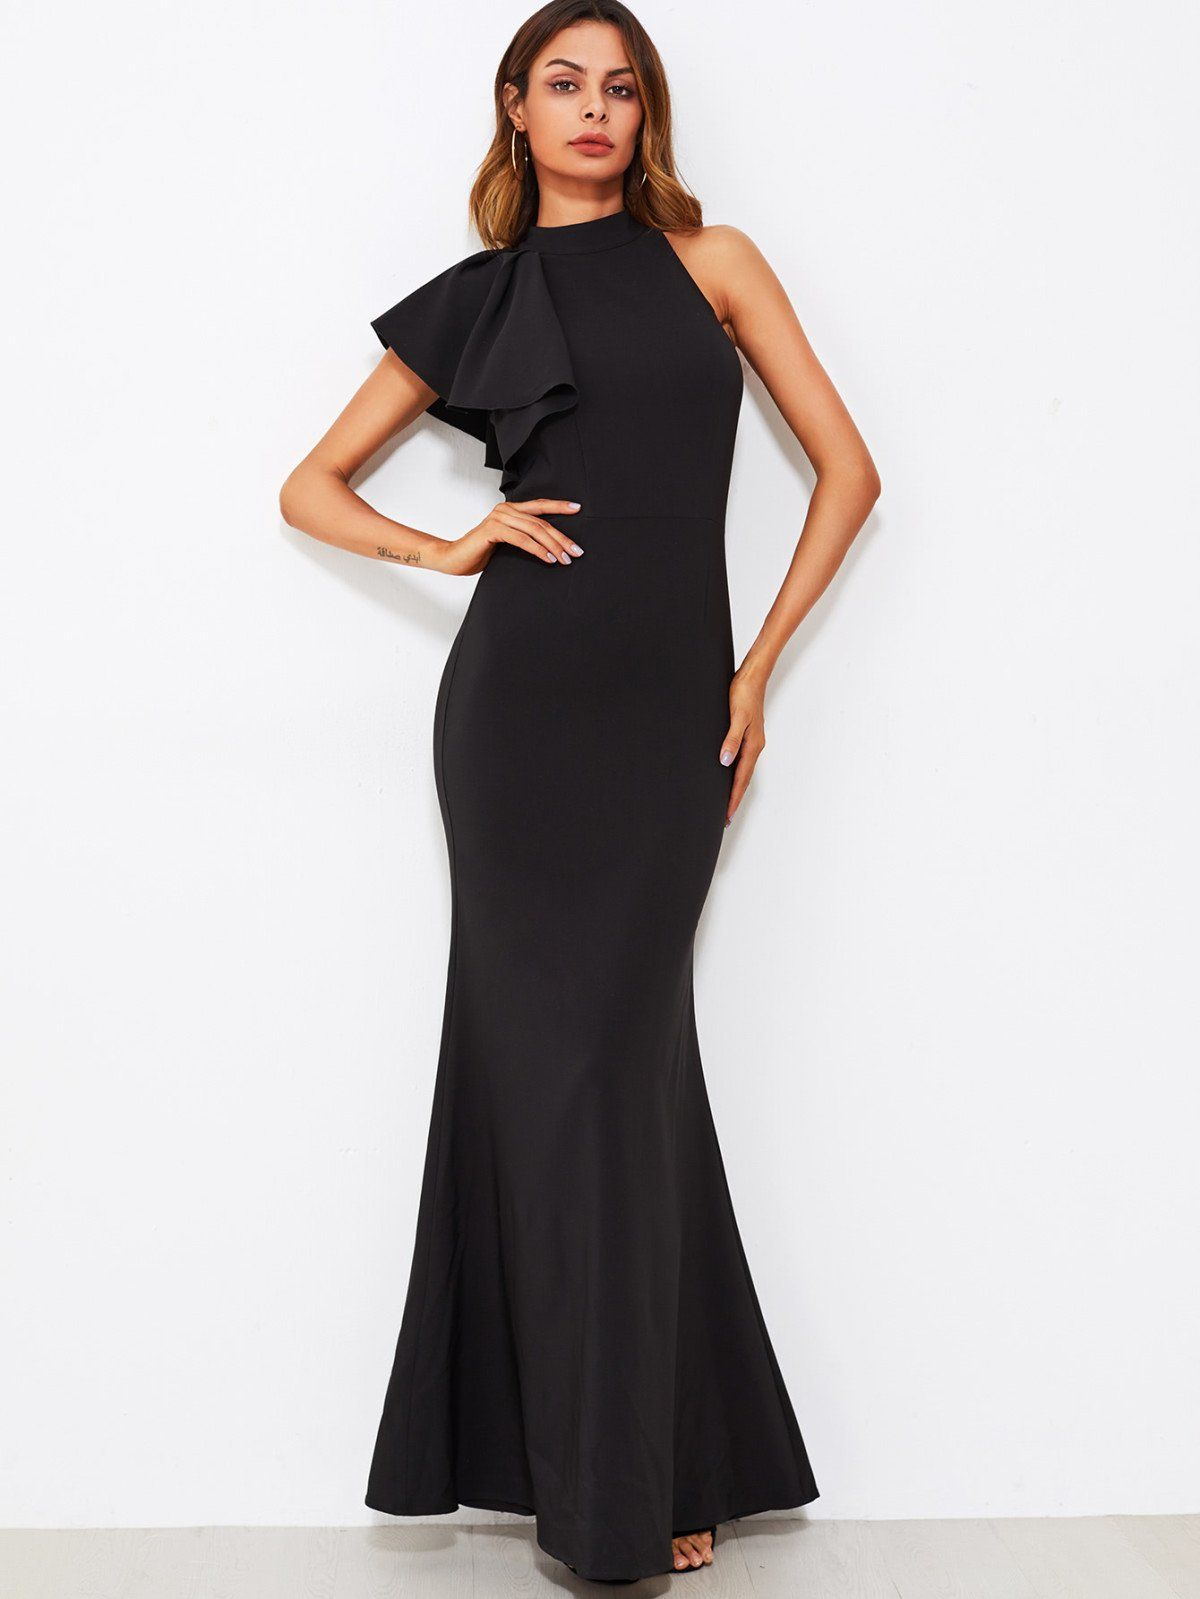 One sided flounce shoulder fishtail dress fishtail shoulder and